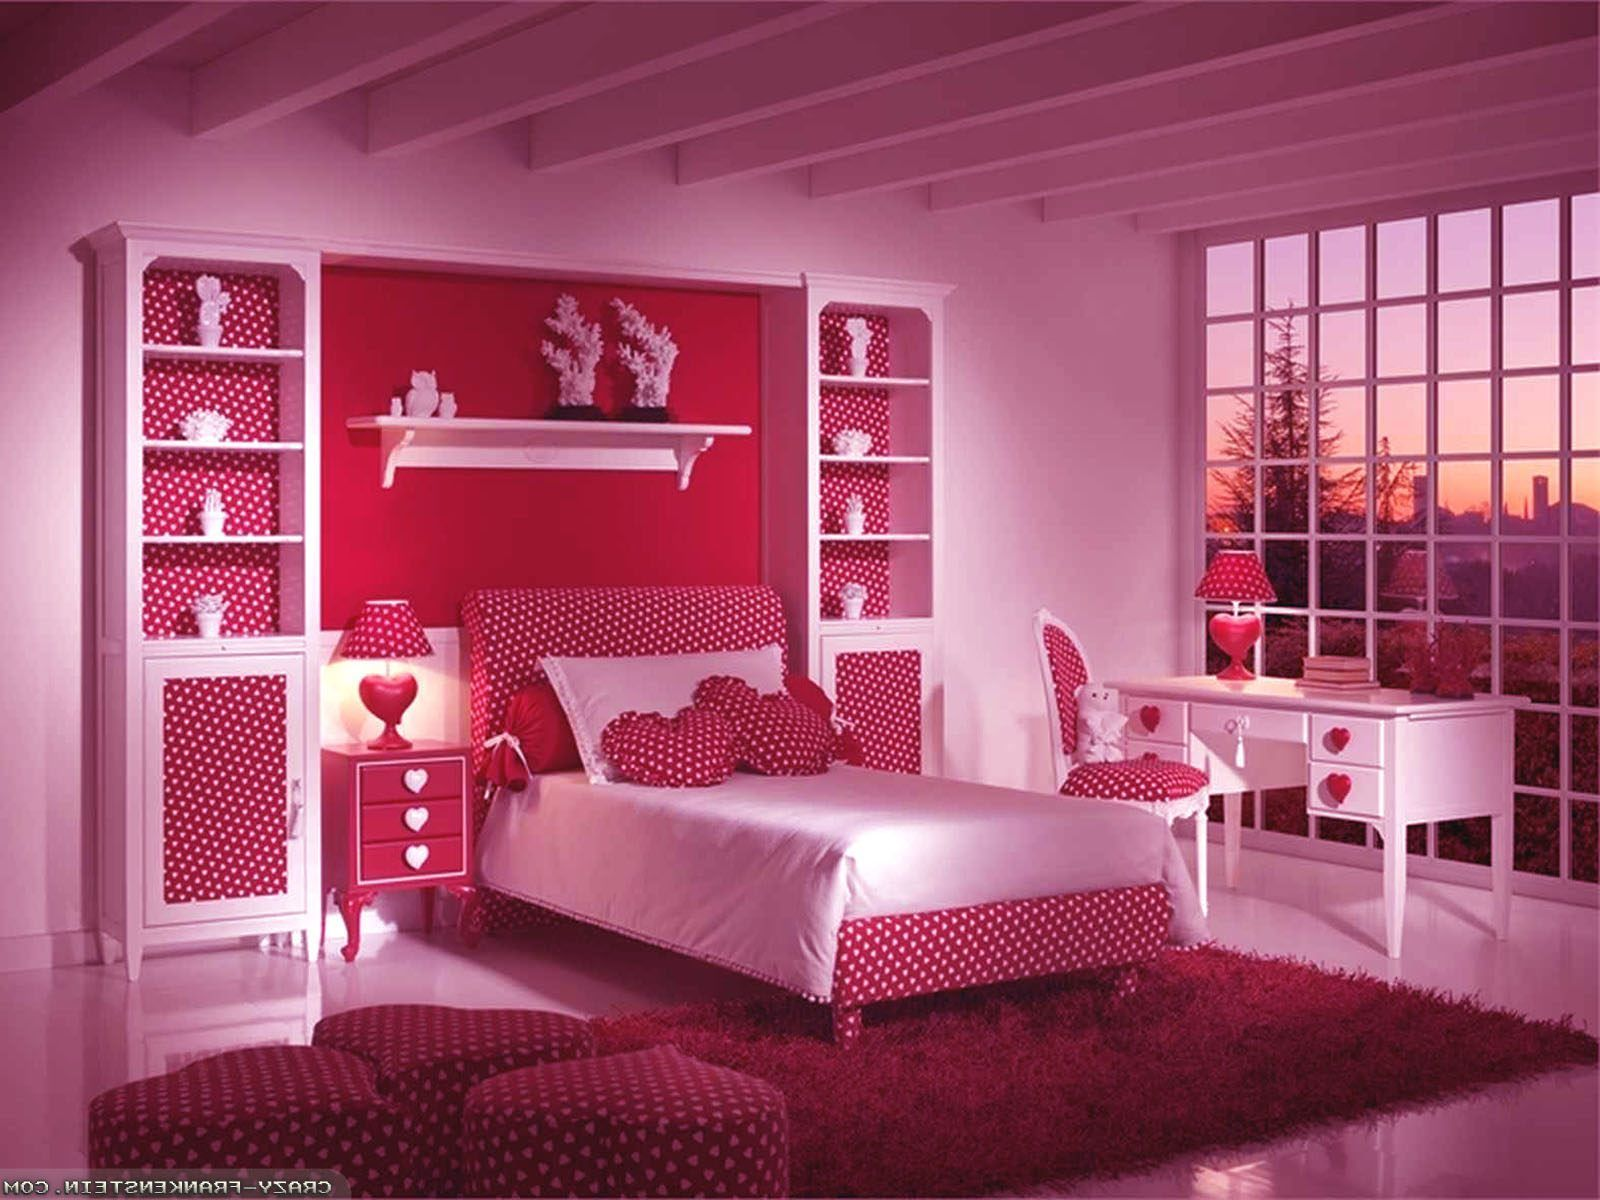 38 romantic bedroom design for teenage girl choosing a on cute bedroom decor ideas for teen romantic bedroom decorating with light and color id=36780